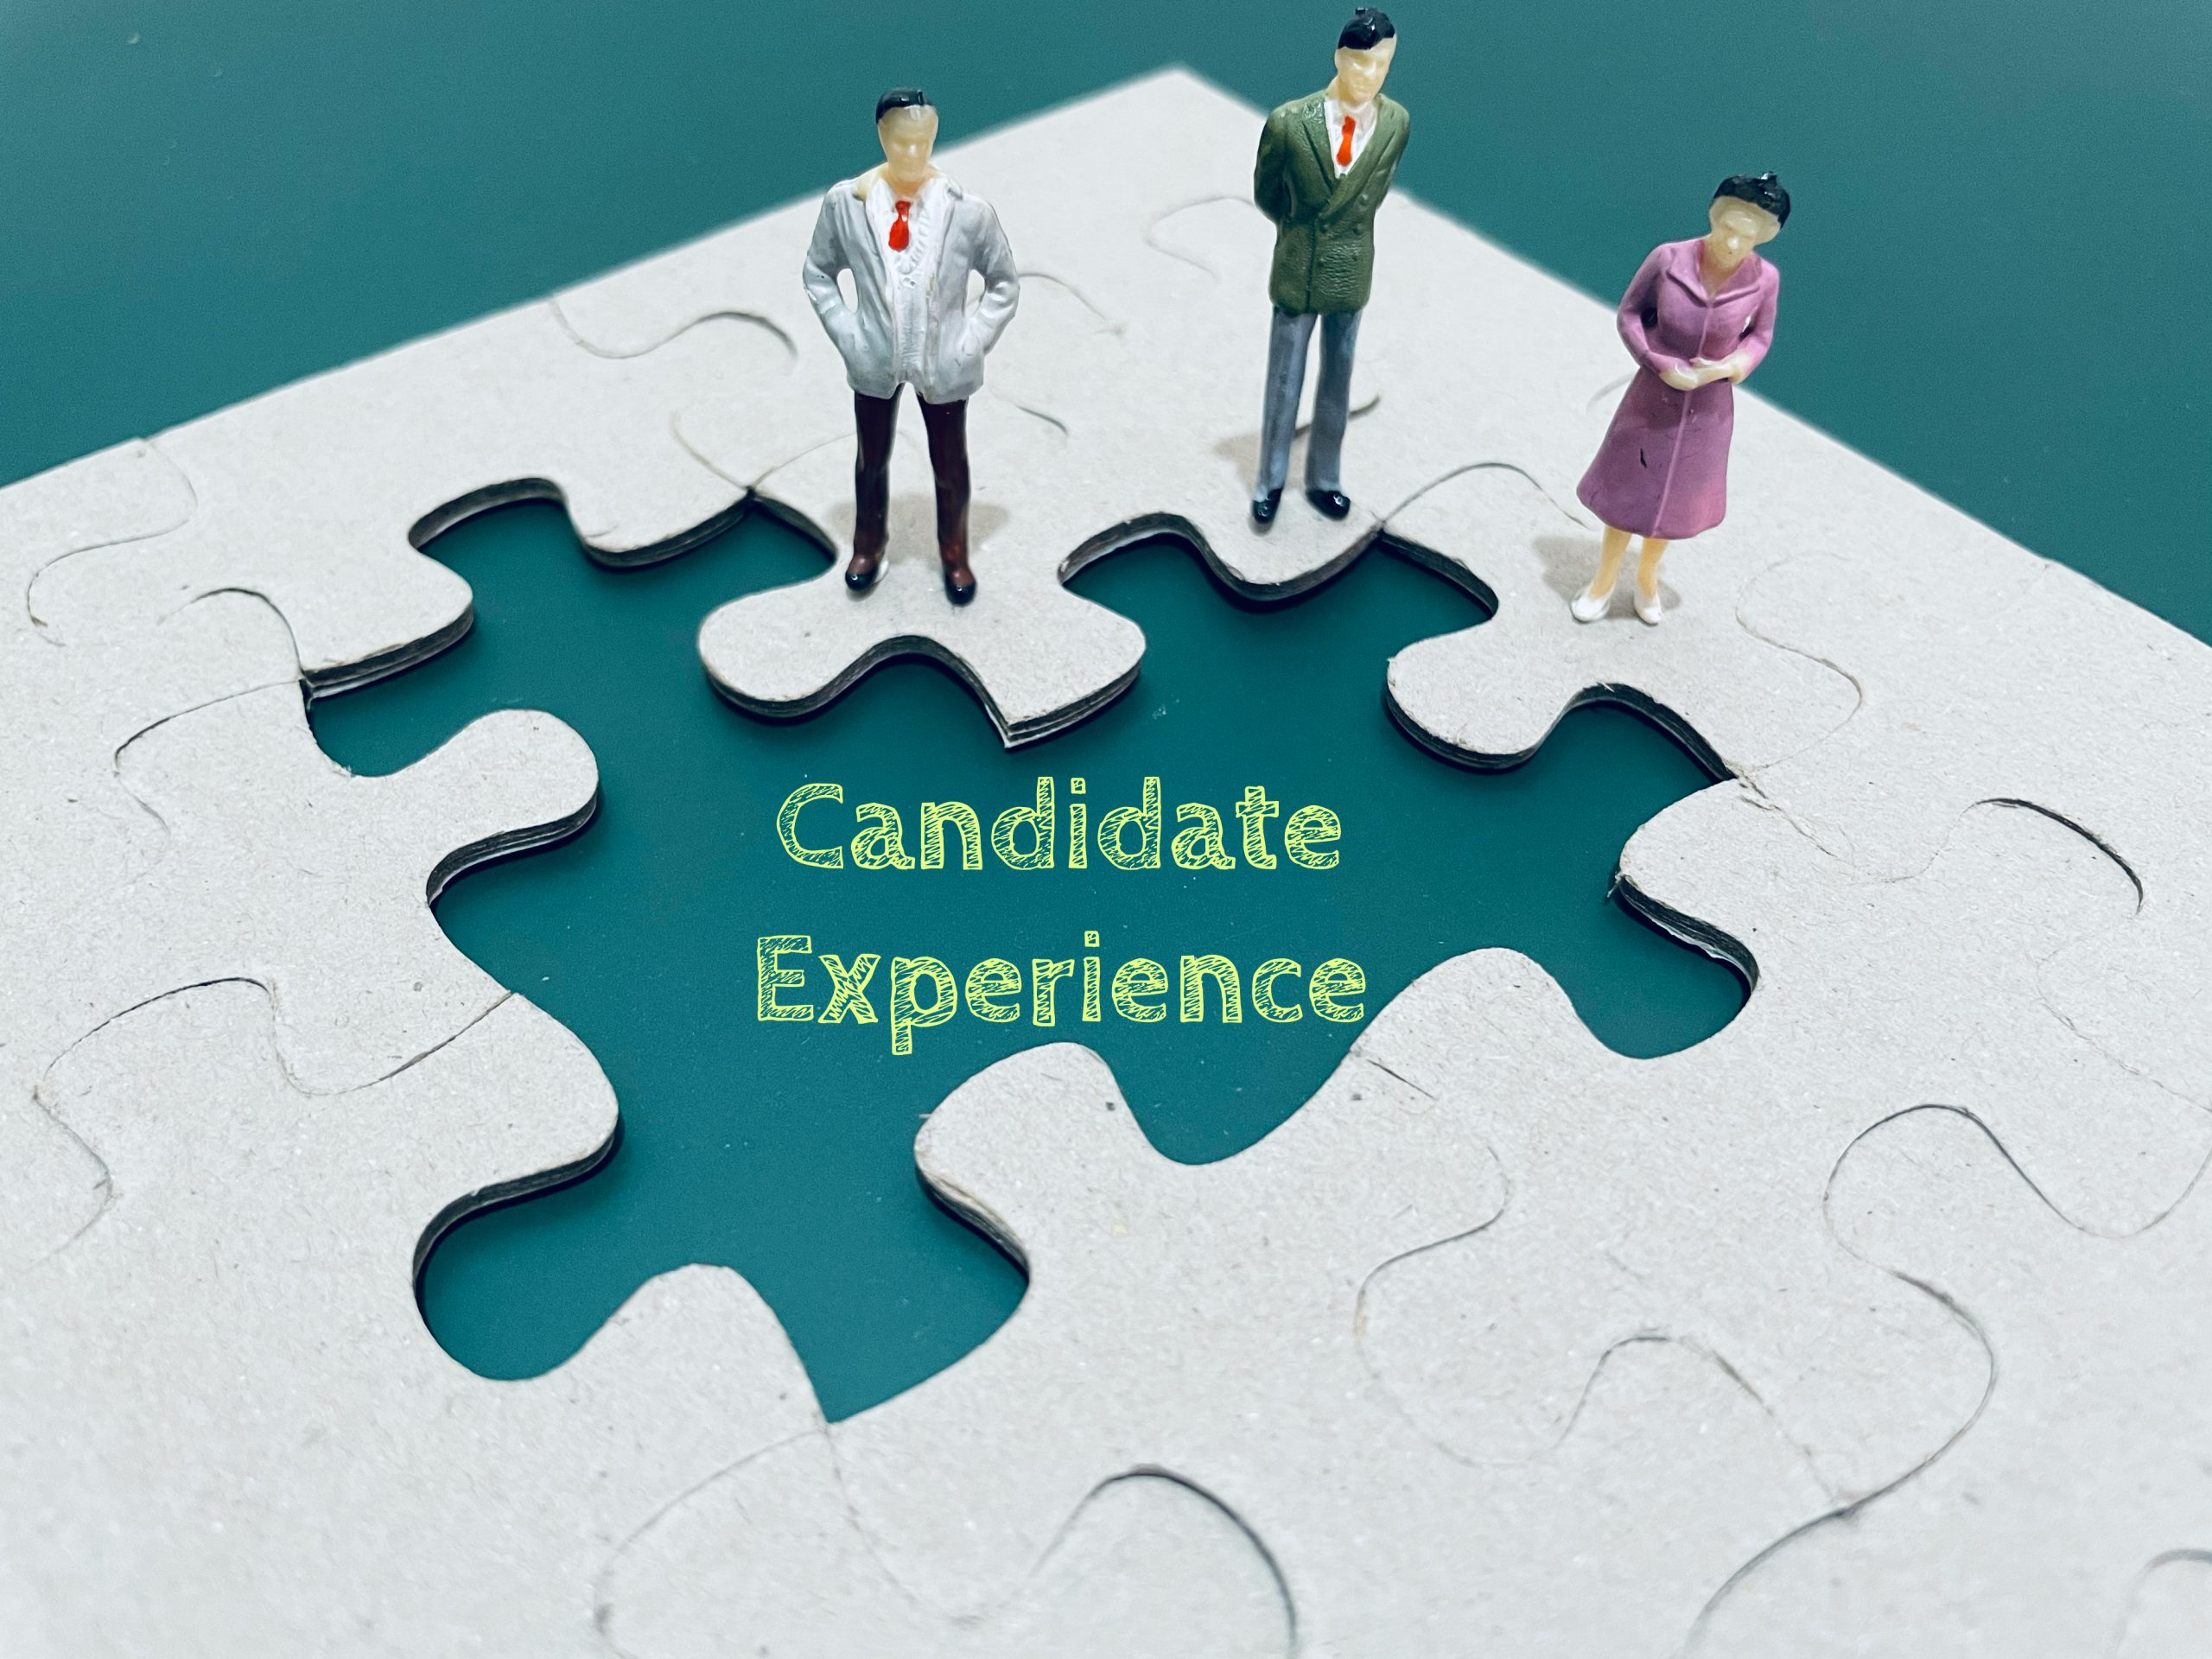 Improve candidate experience and boost employee retention